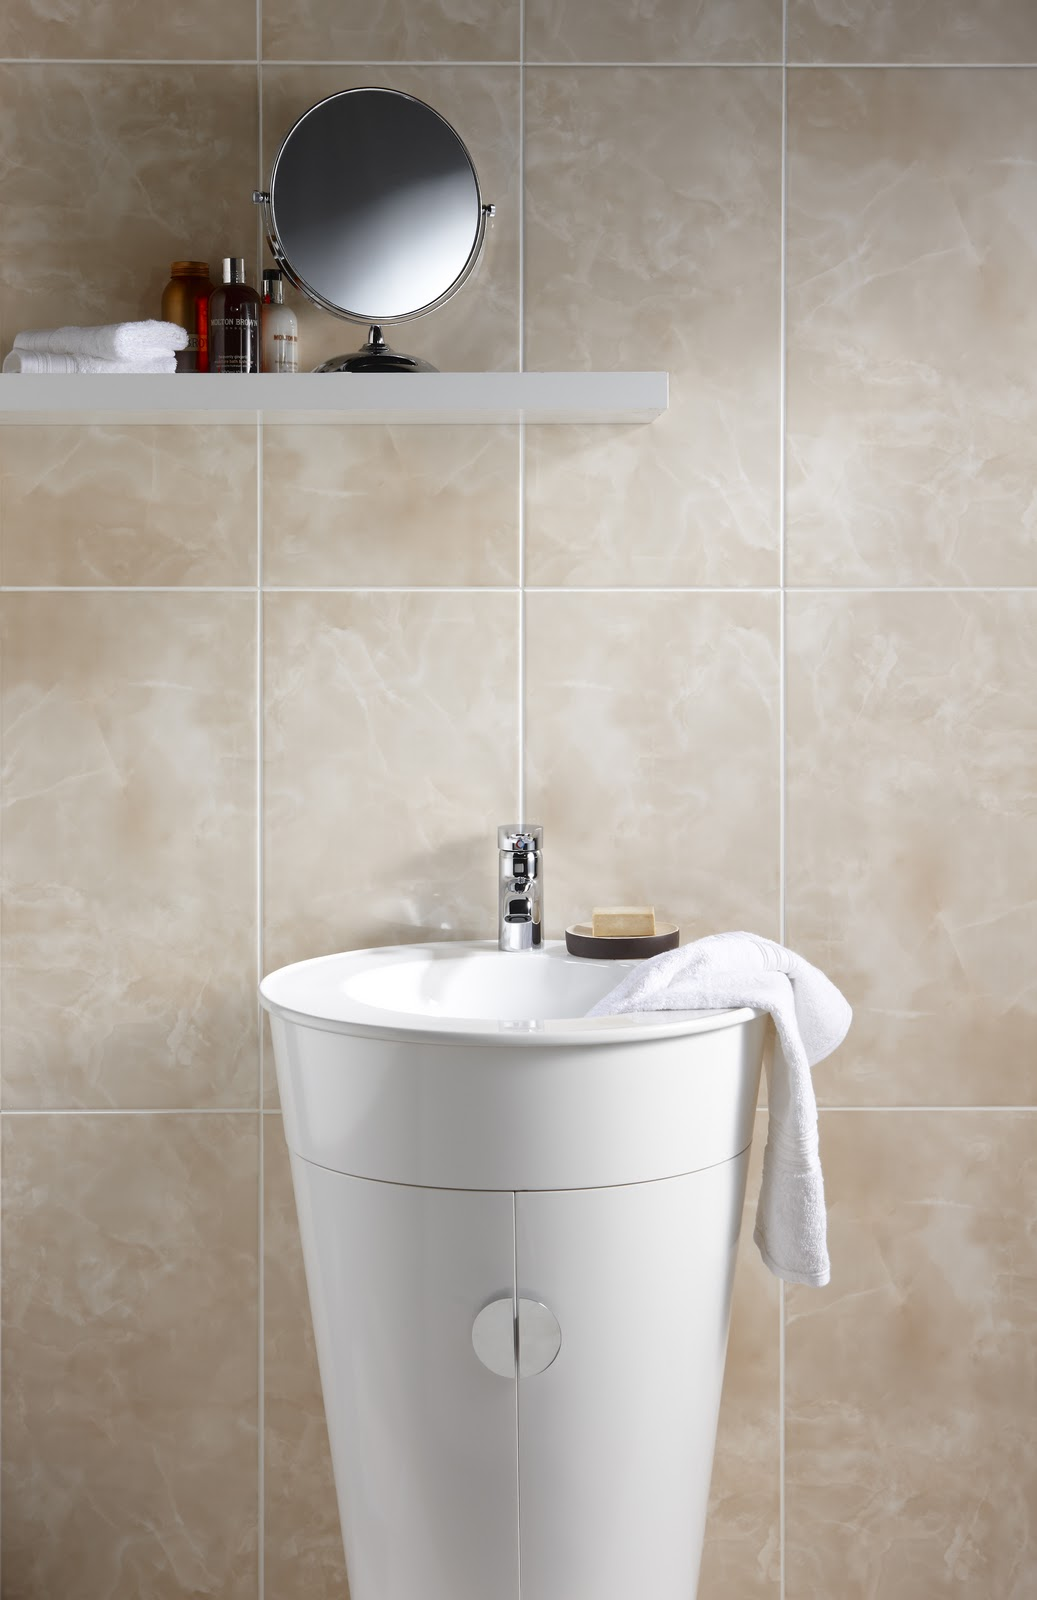 Victoria Plumb Review: Victoria Plumb sanitaryware to feature in new ...